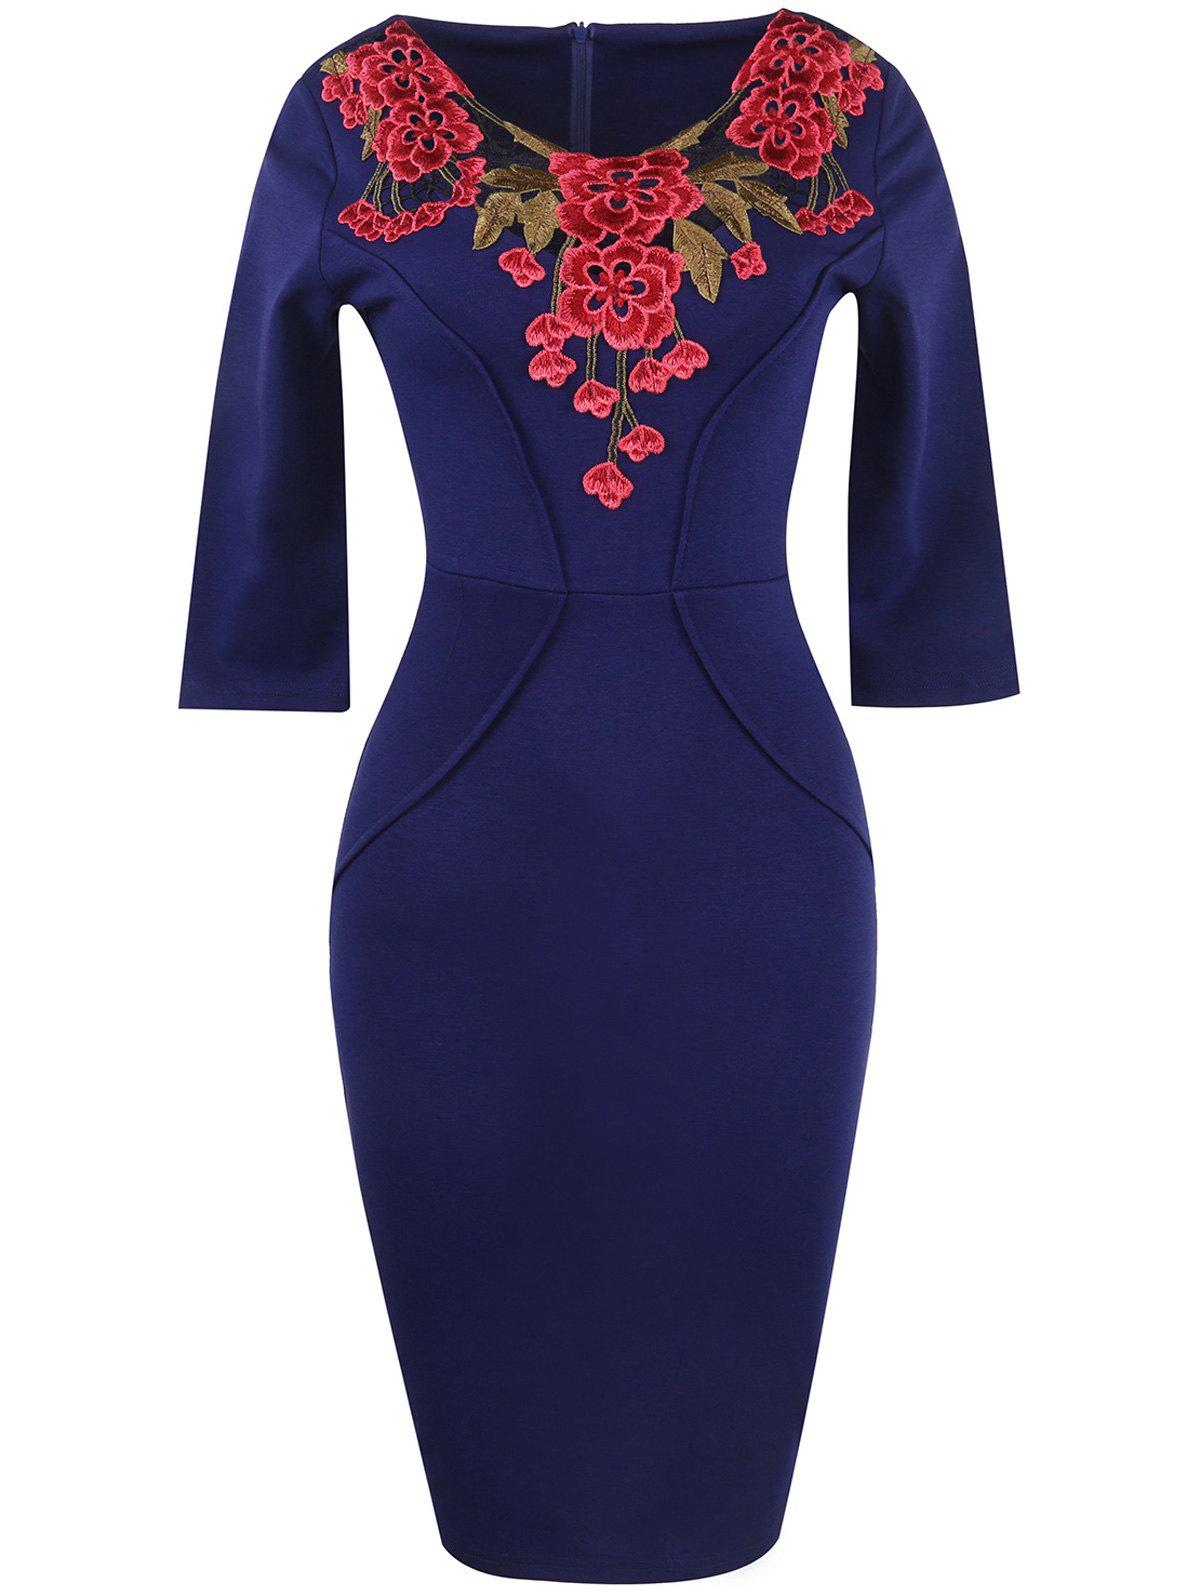 Floral Embroidery Openwork Sheath Dress floral lace sheath dress